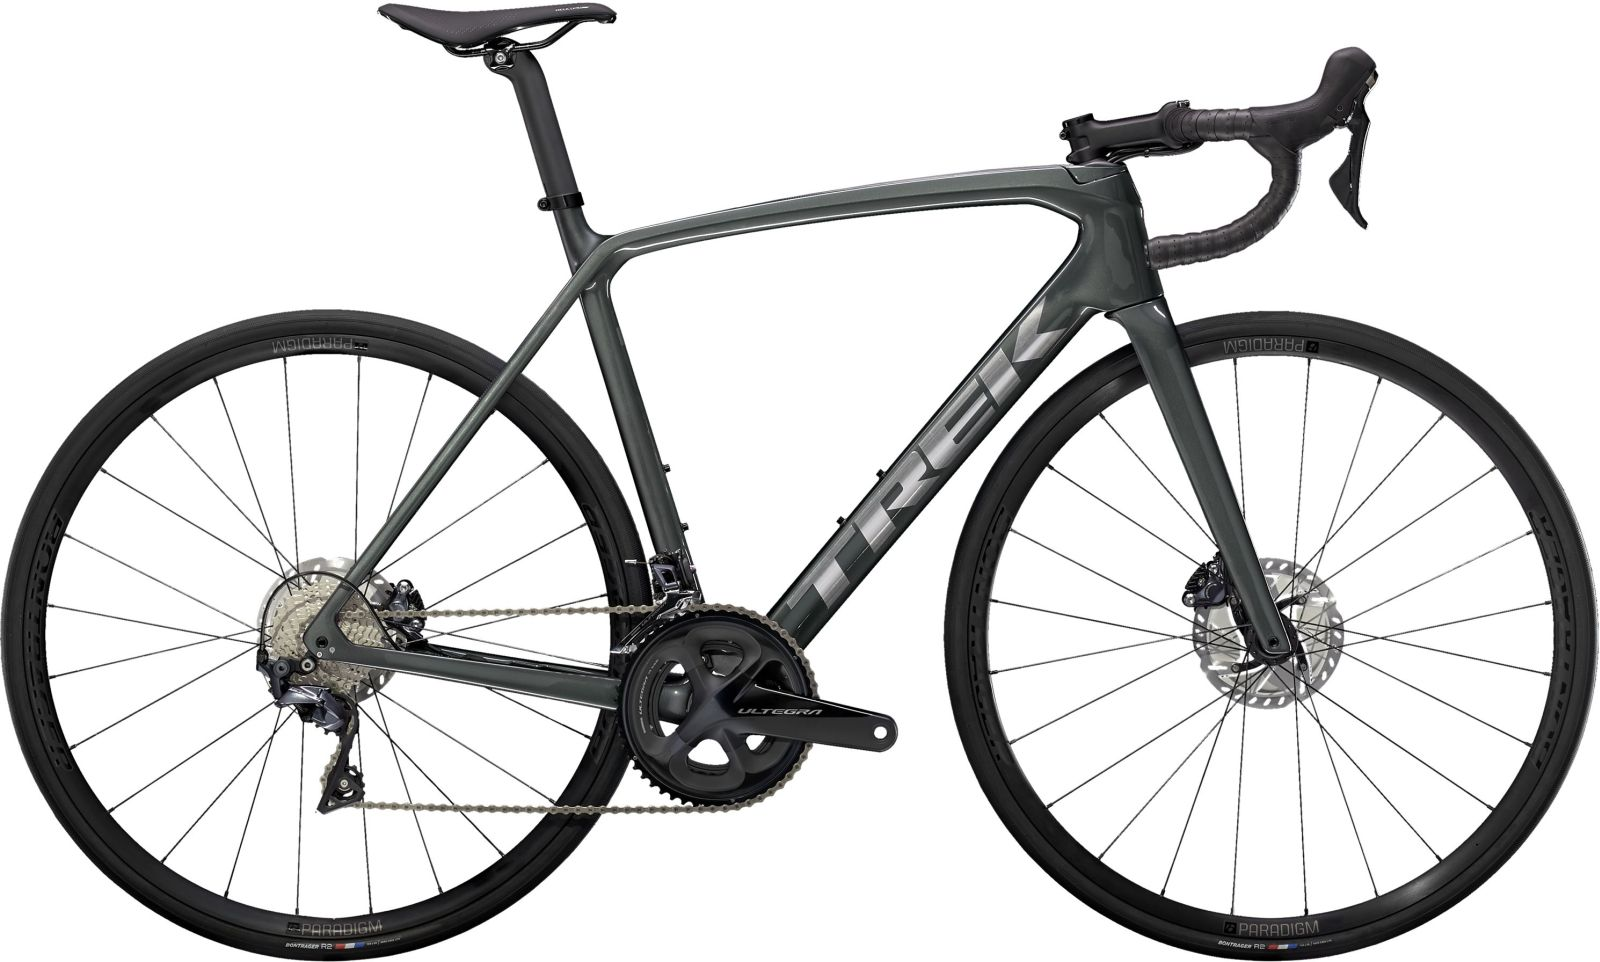 Trek Emonda SL 6 Disc - Lithium Grey/Brushed Chrome 56